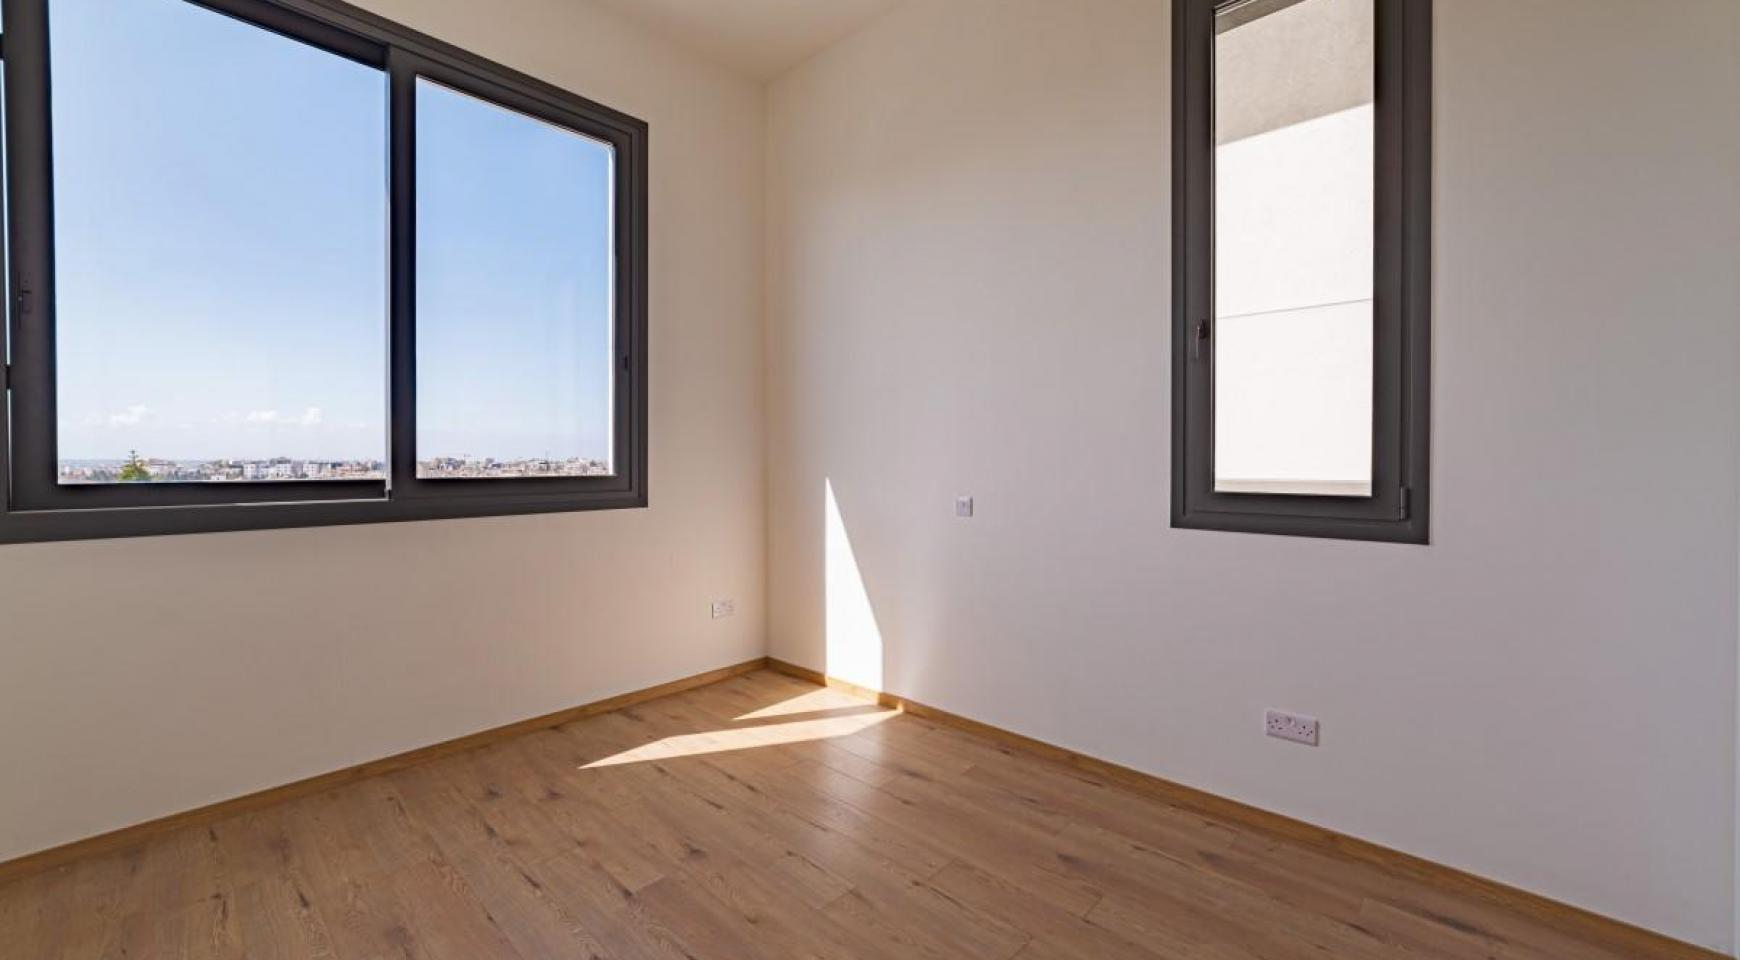 Urban City Residences, Block A. New Spacious 2 Bedroom Apartment 202 in the City Centre - 16